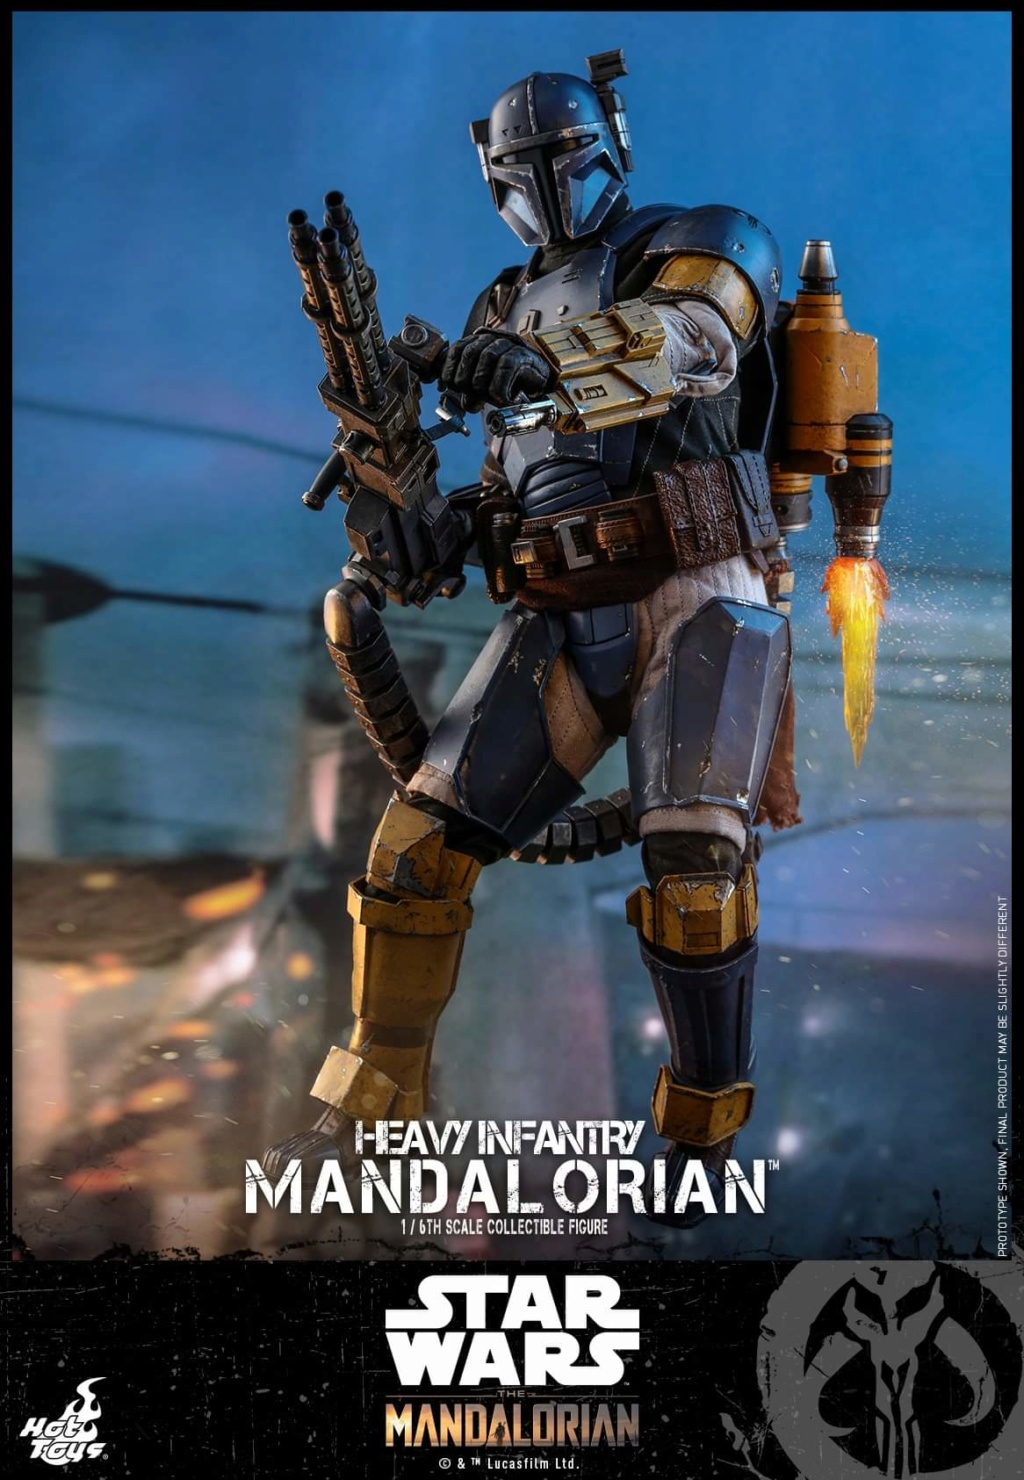 Heavy Infantry Mandalorian Collectible Figure 1/6th Hot Toy. Fb_img56